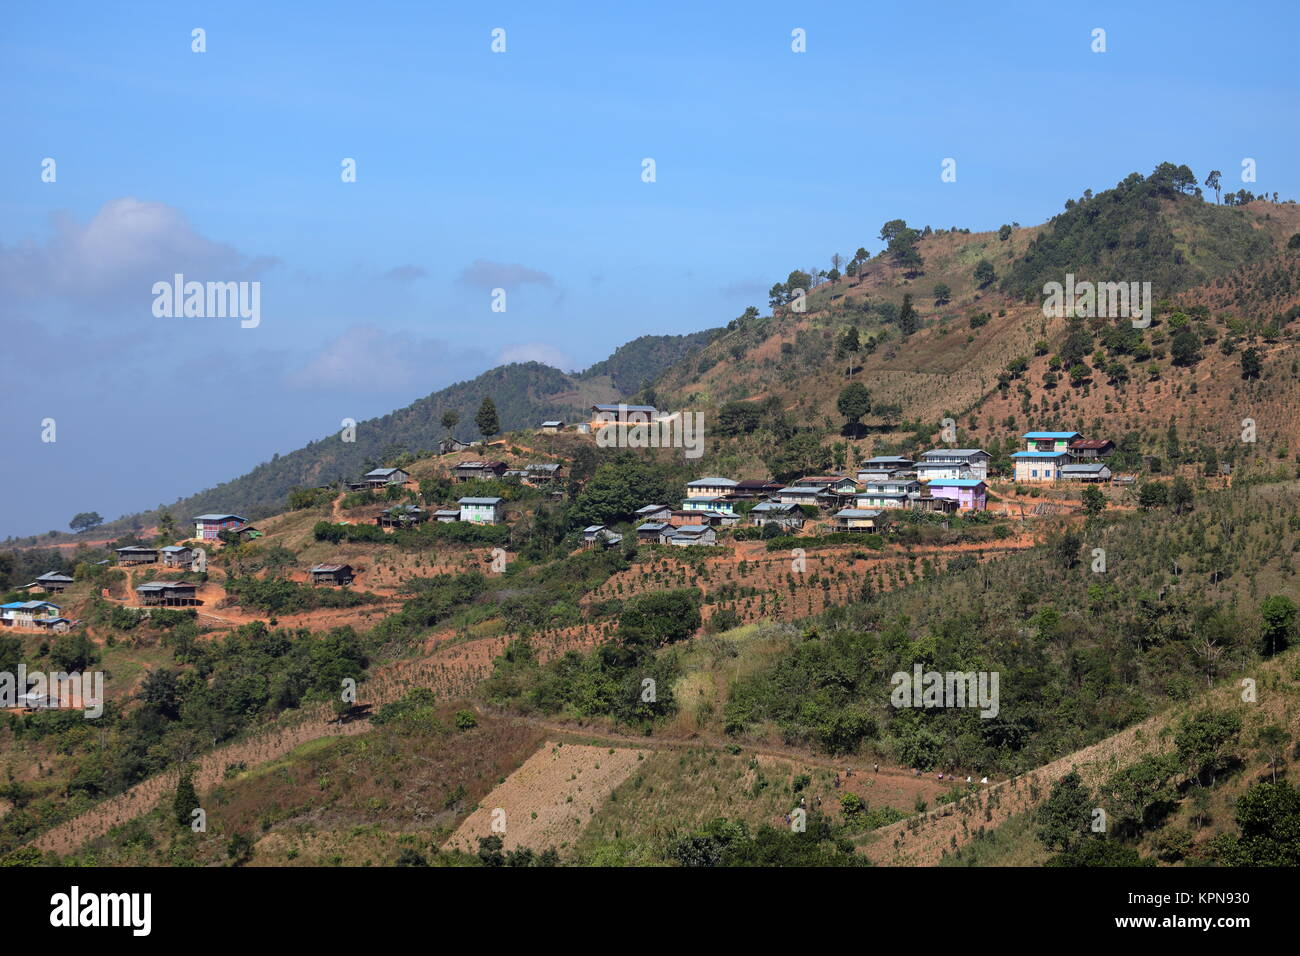 homes and villages in myanmar - Stock Image